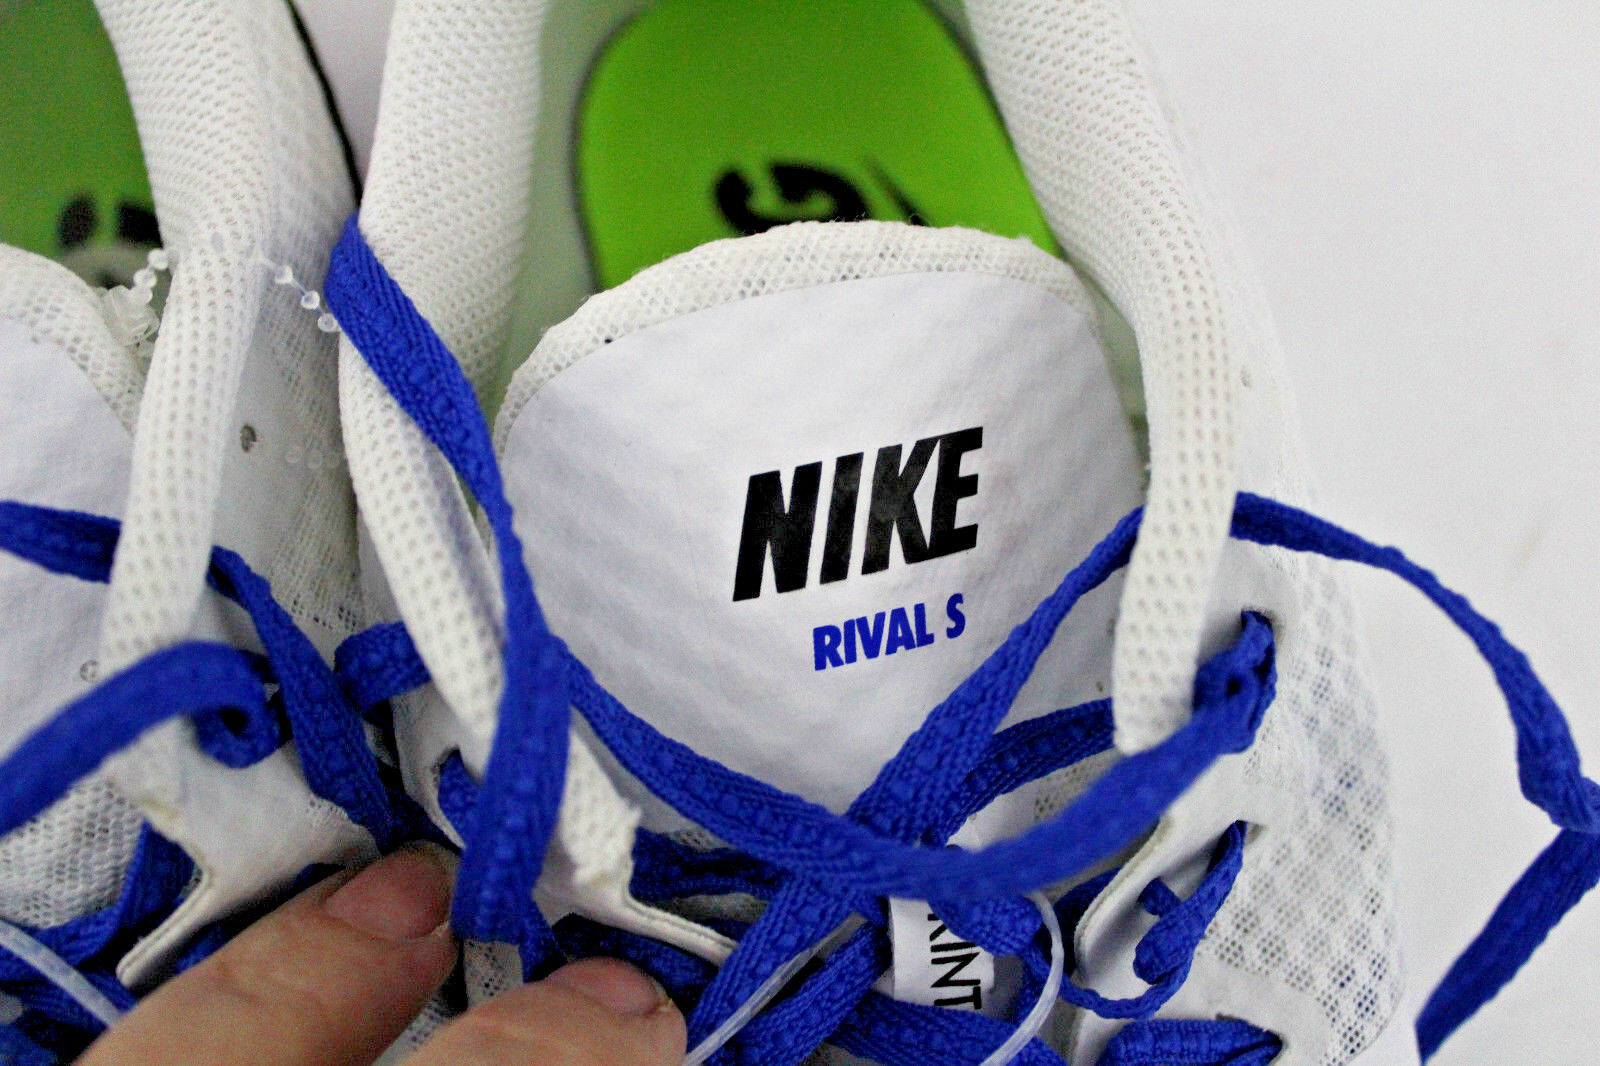 nike zoom rival rival rival s8 hommes sz 13 track & field sprint style 806554-100 pointes 08df80